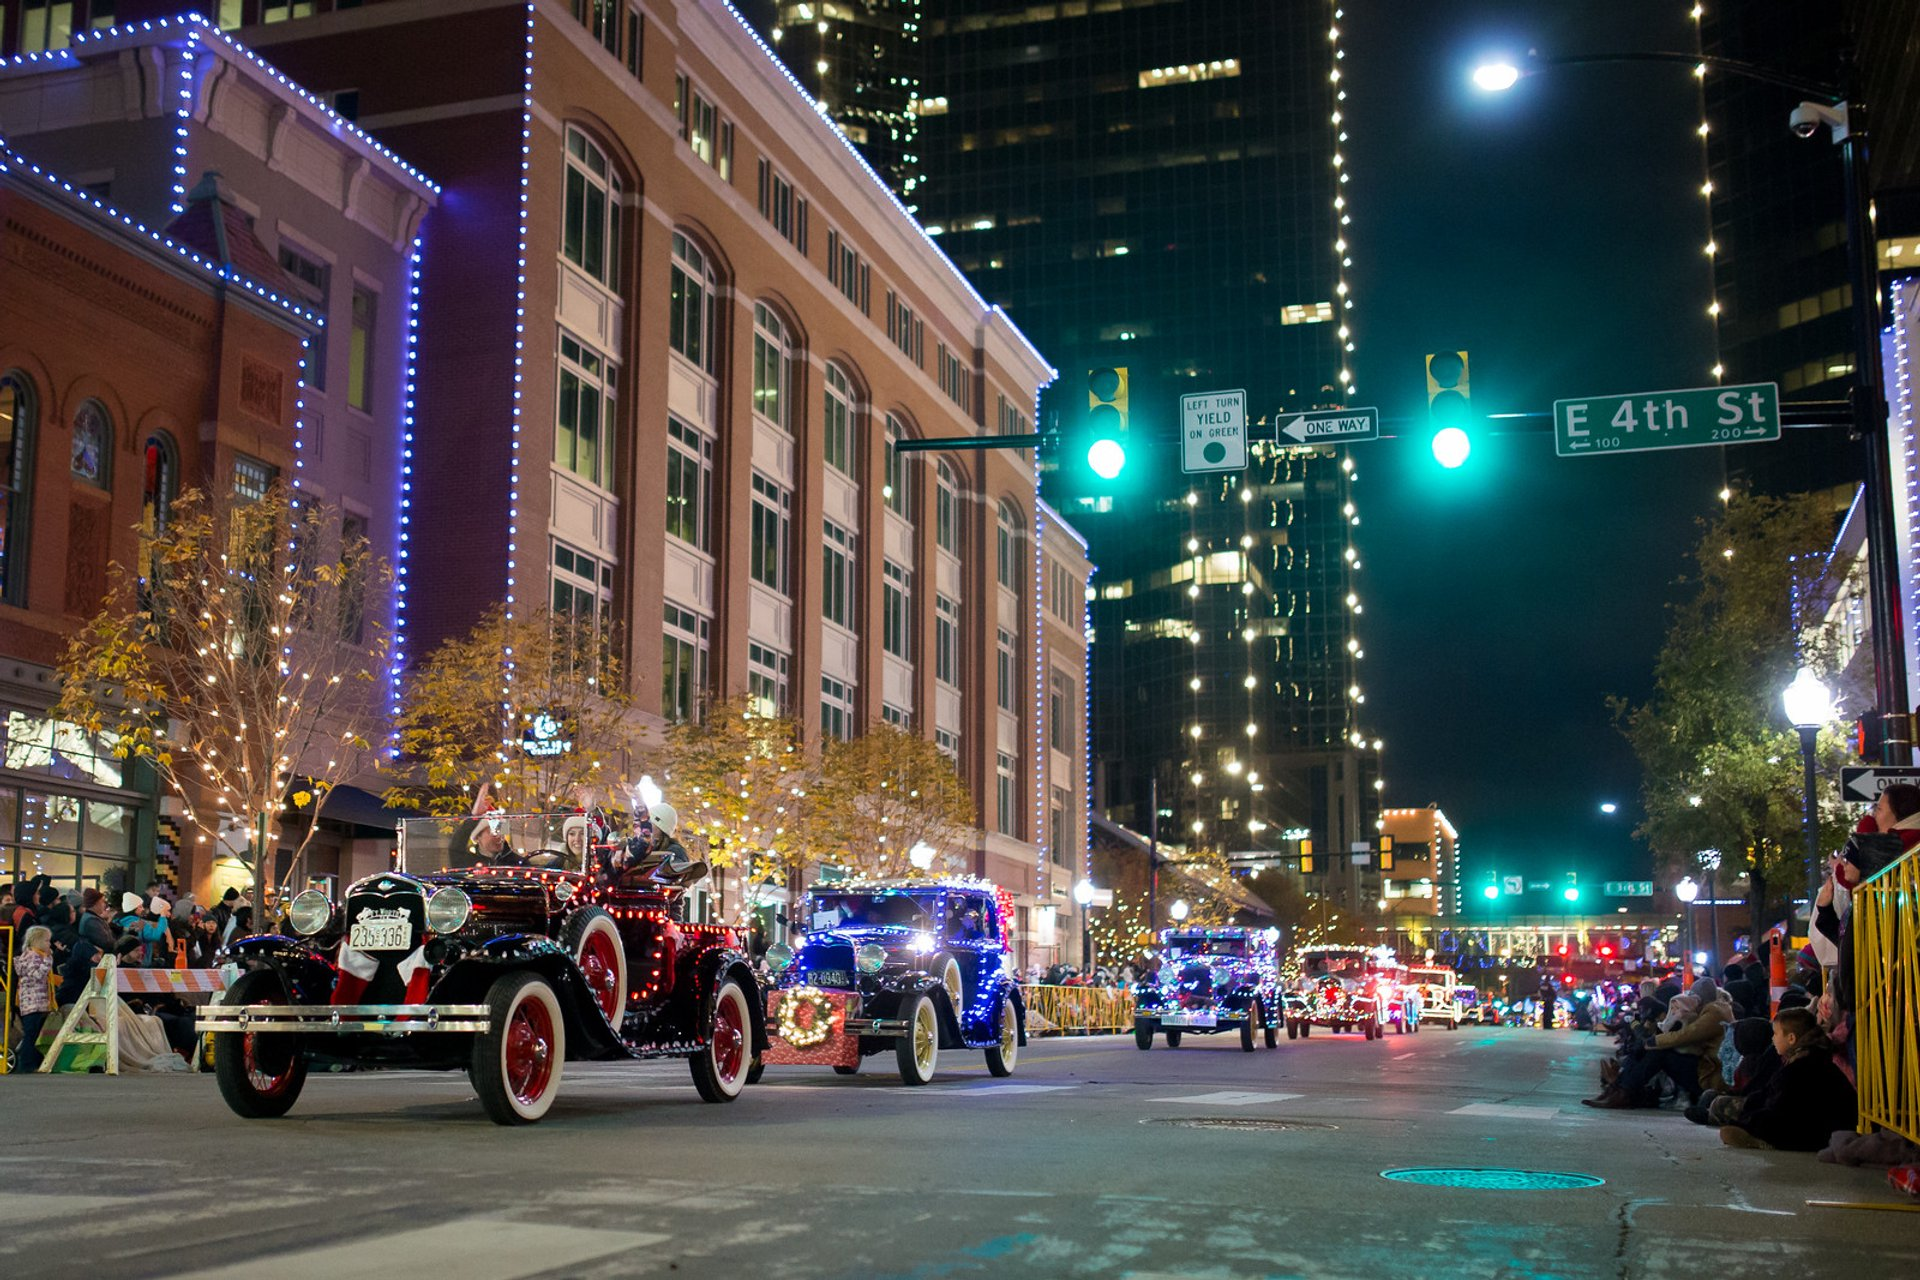 Fort Worth Parade of Lights in Texas 2020 - Best Time